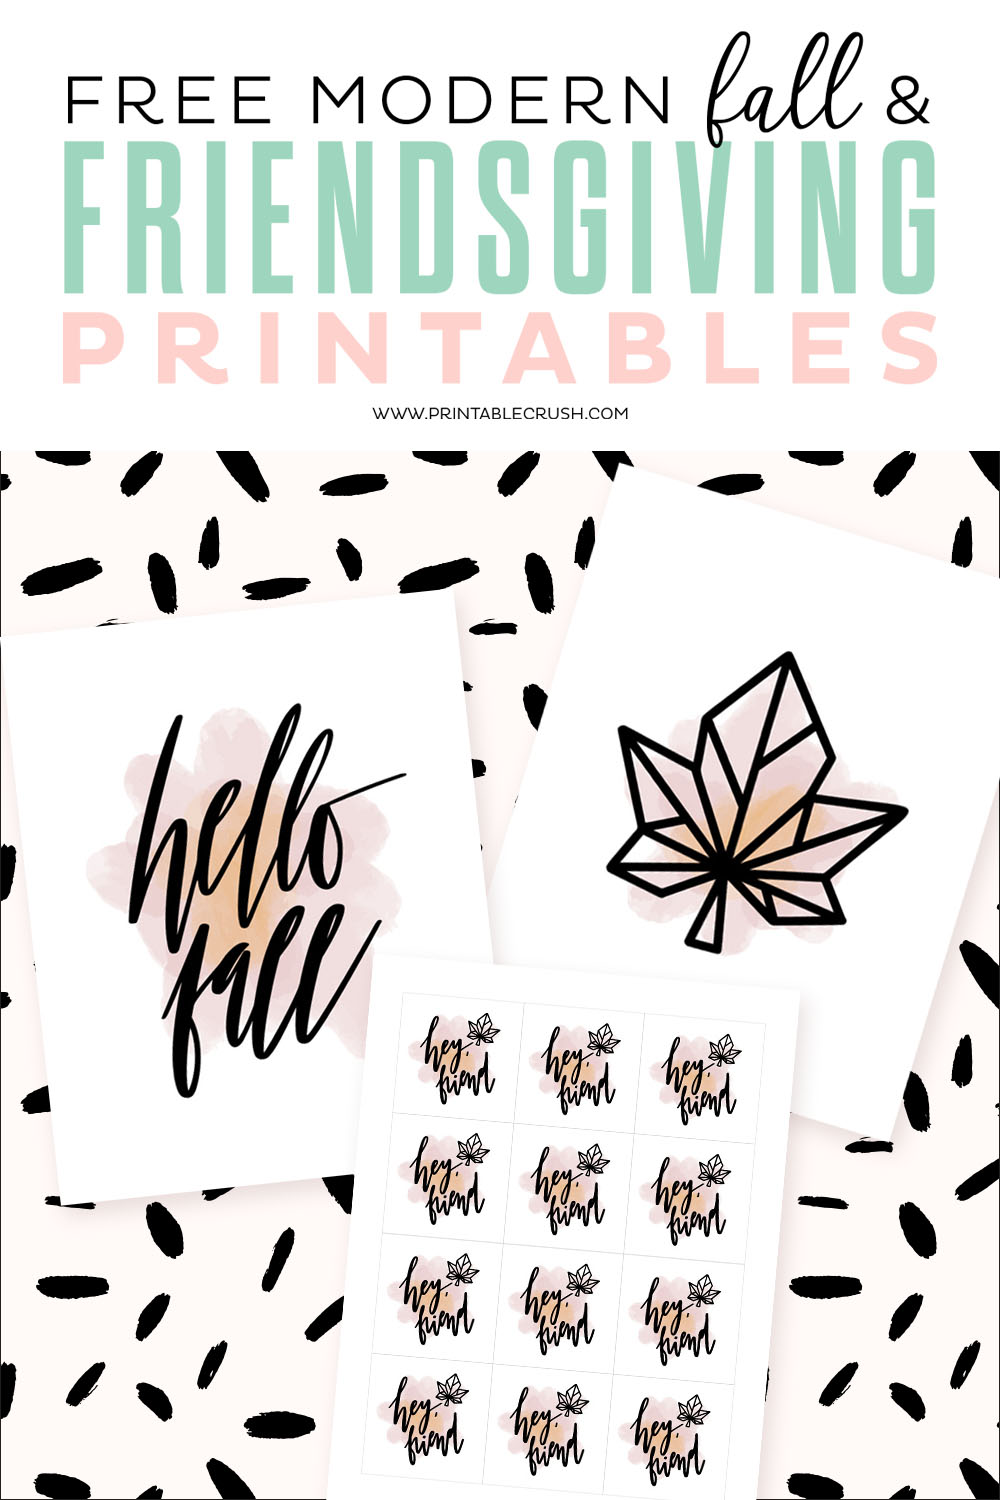 Free Modern Fall and Friendsgiving Printables - perfect for your Thanksgiving party this year! #friendsgiving #fallprintables #fallhomedecor  #freeprintables #thanksgivingprintable #modernfalldecor via @printablecrush